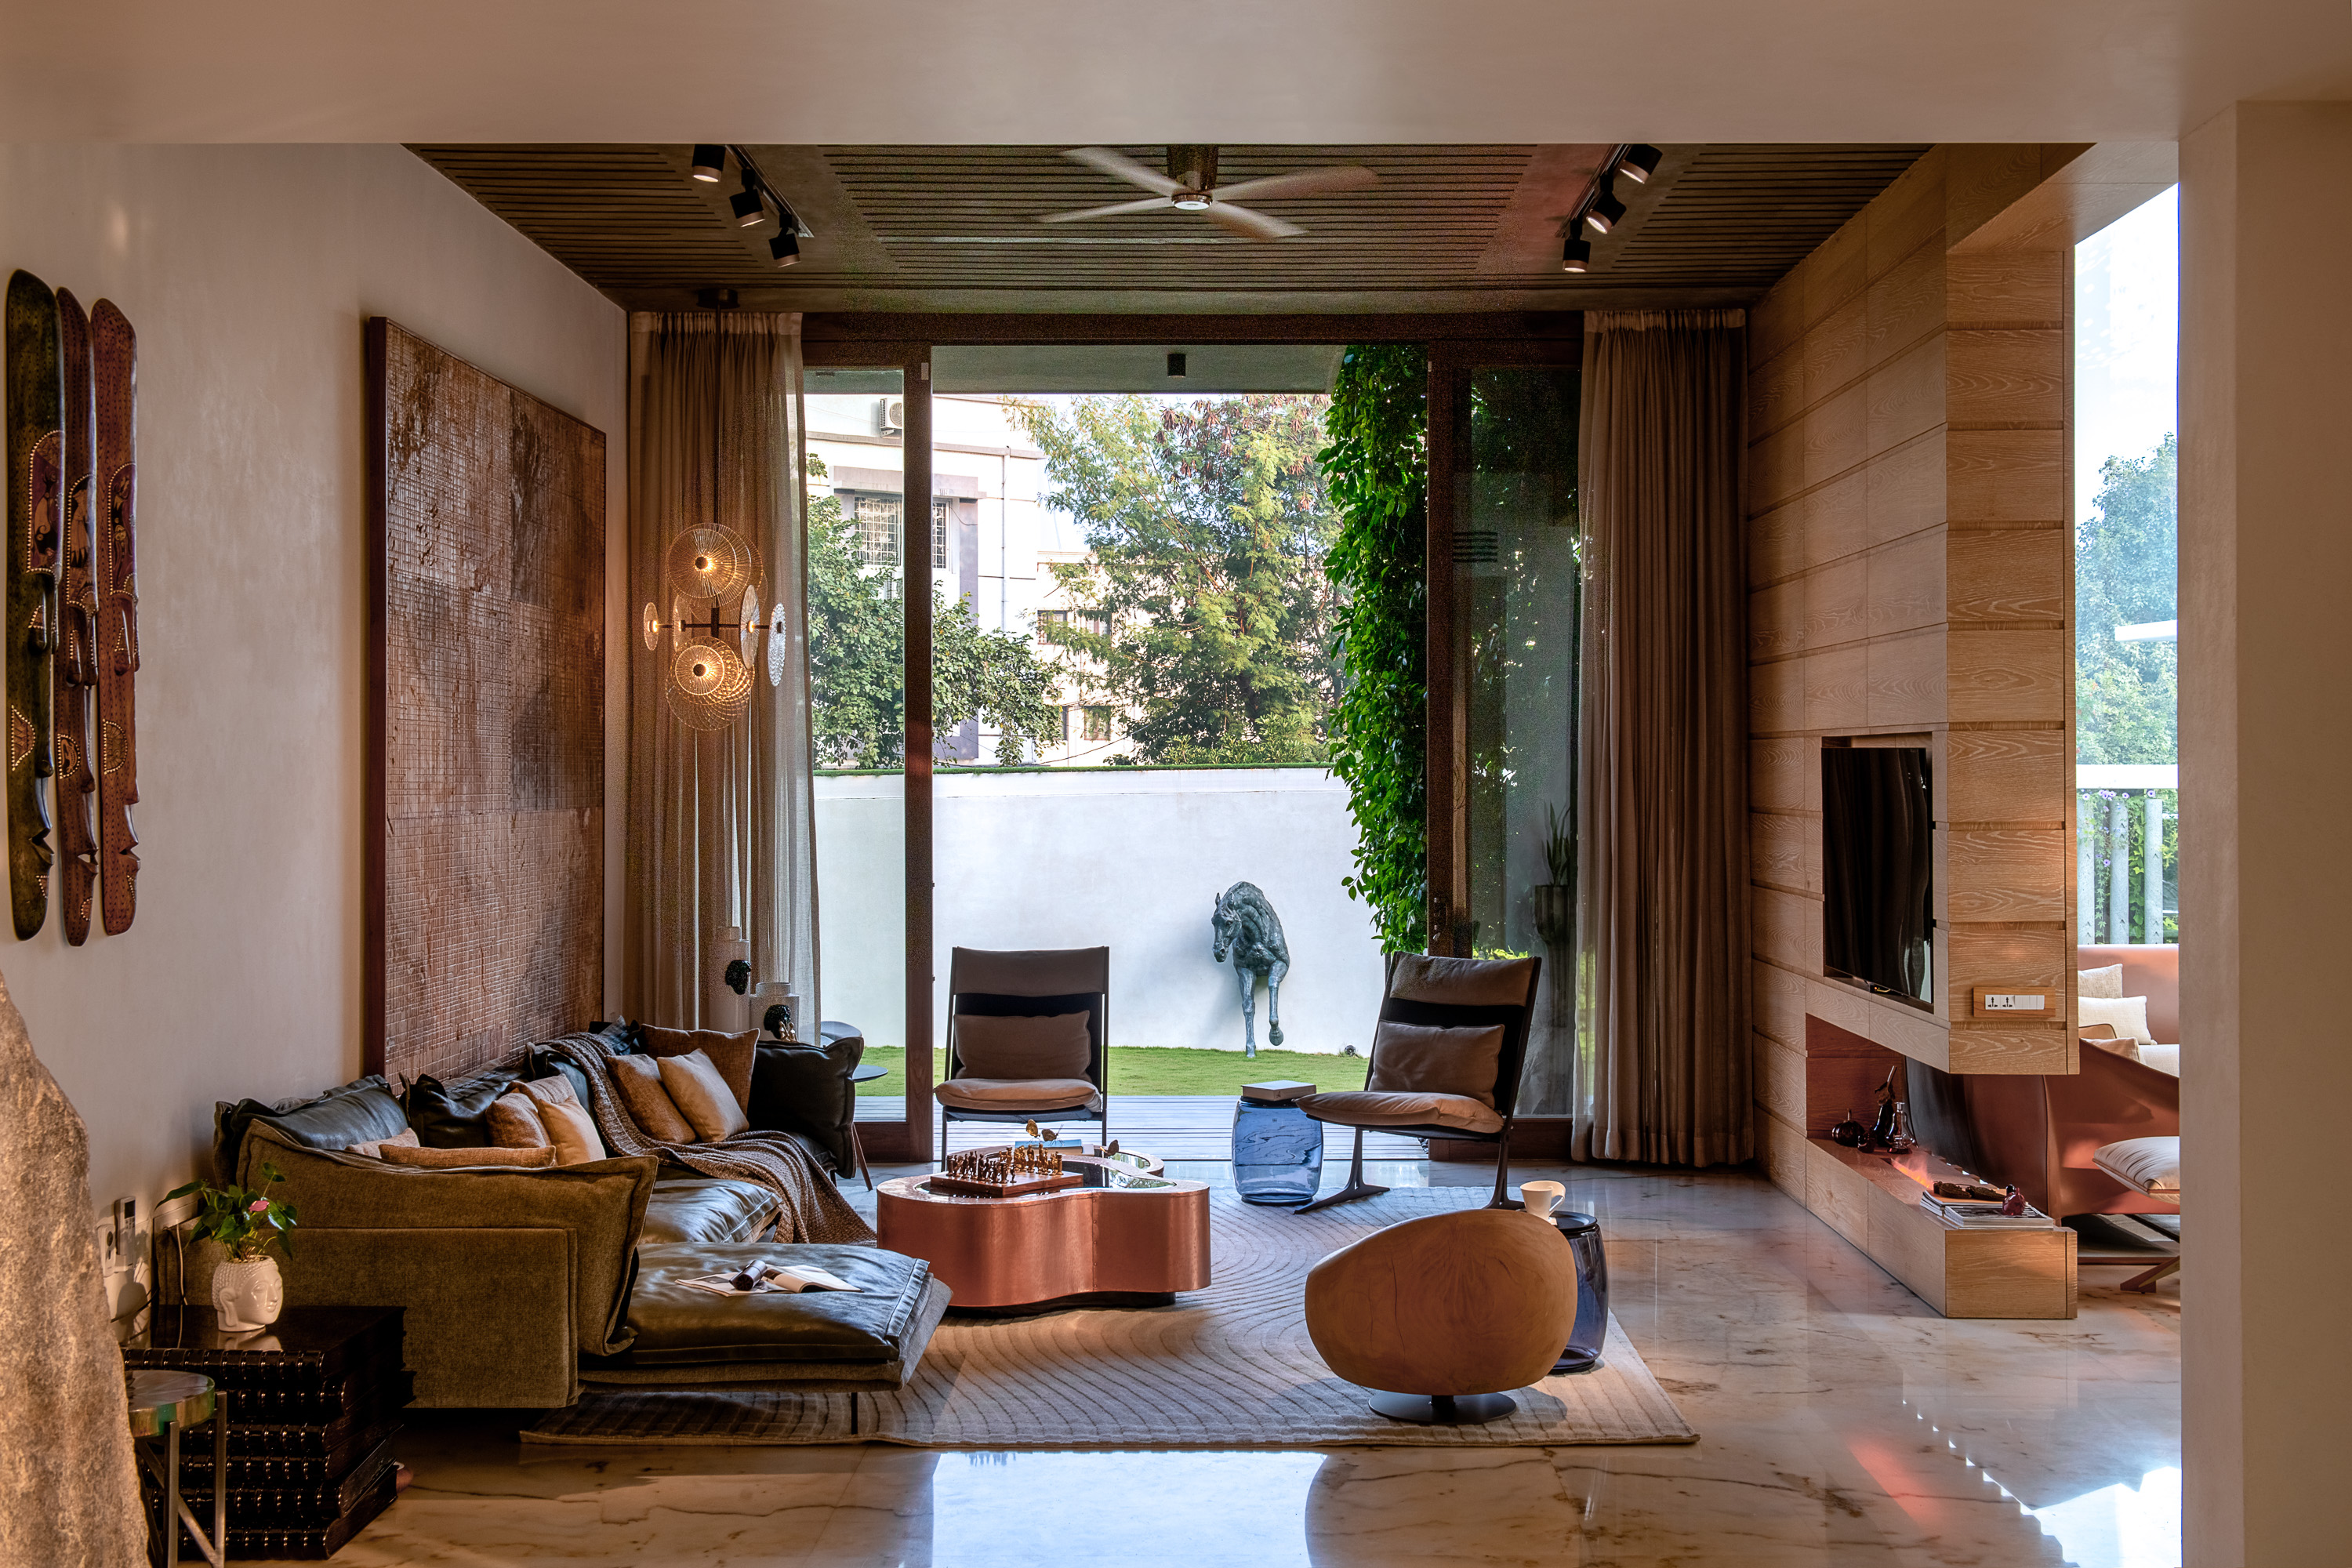 Sustainability Meets Luxury In This Private Residence by NA Architects (4) na architects Sustainability Meets Luxury In This Private Residence by NA Architects Sustainability Meets Luxury In This Private Residence by NA Architects 4